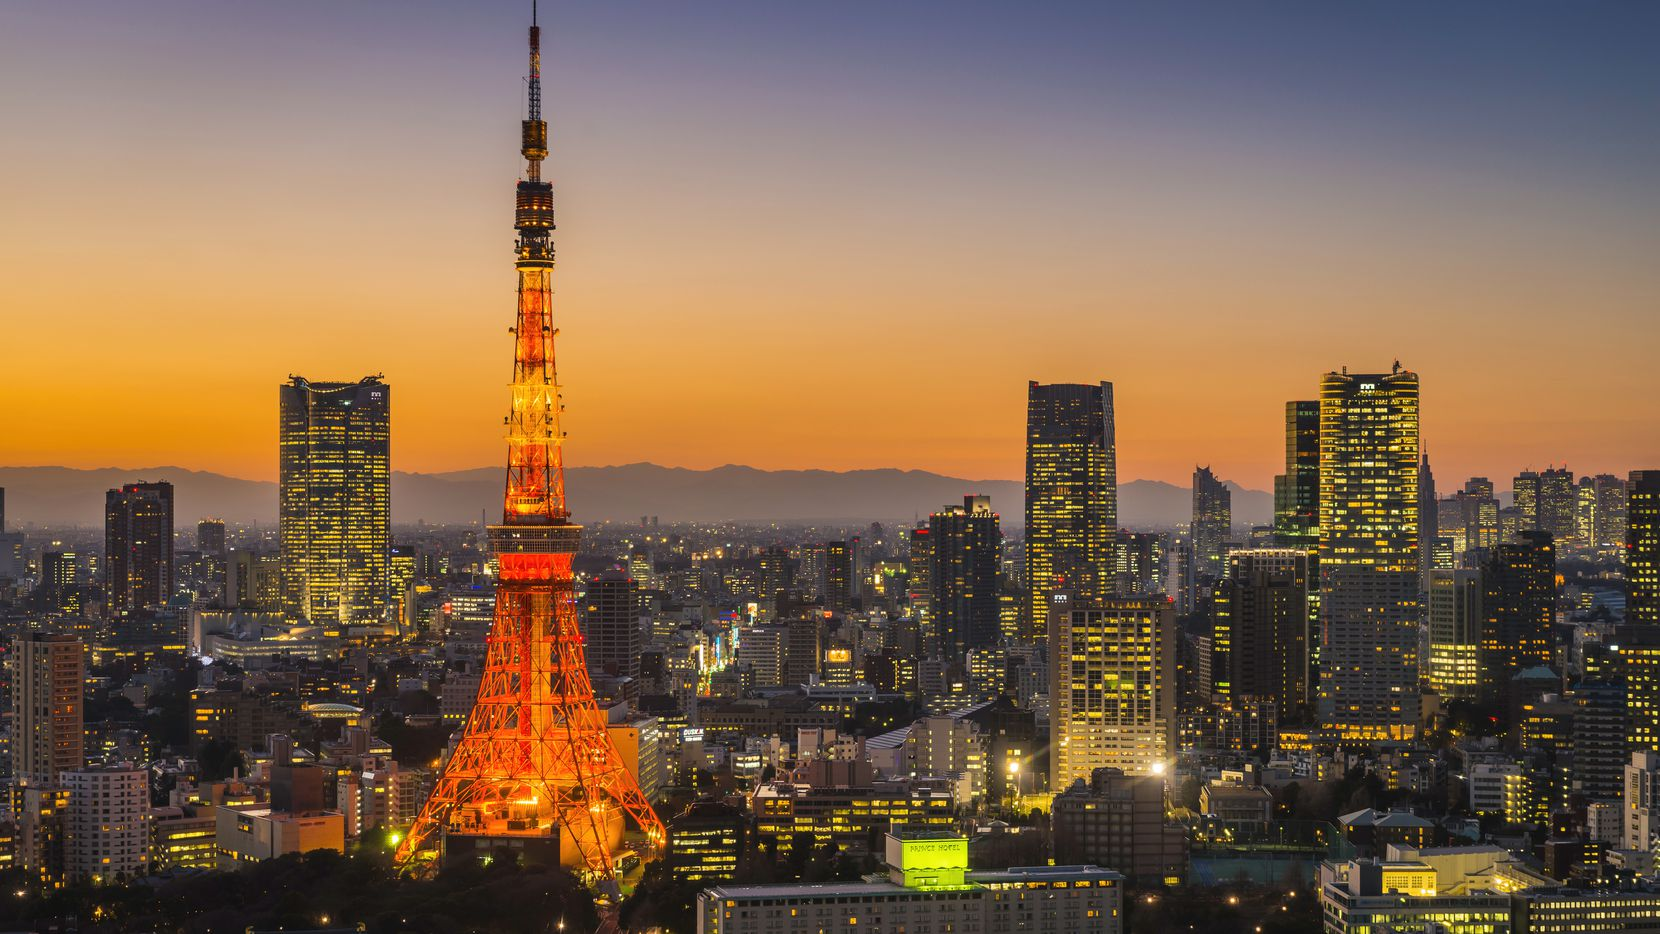 The iconic spire of Tokyo Tower spotlit above the twinkling lights and skyscrapers of downtown Tokyo below orange sunset skies, Japan. ProPhoto RGB profile for maximum color fidelity and gamut.